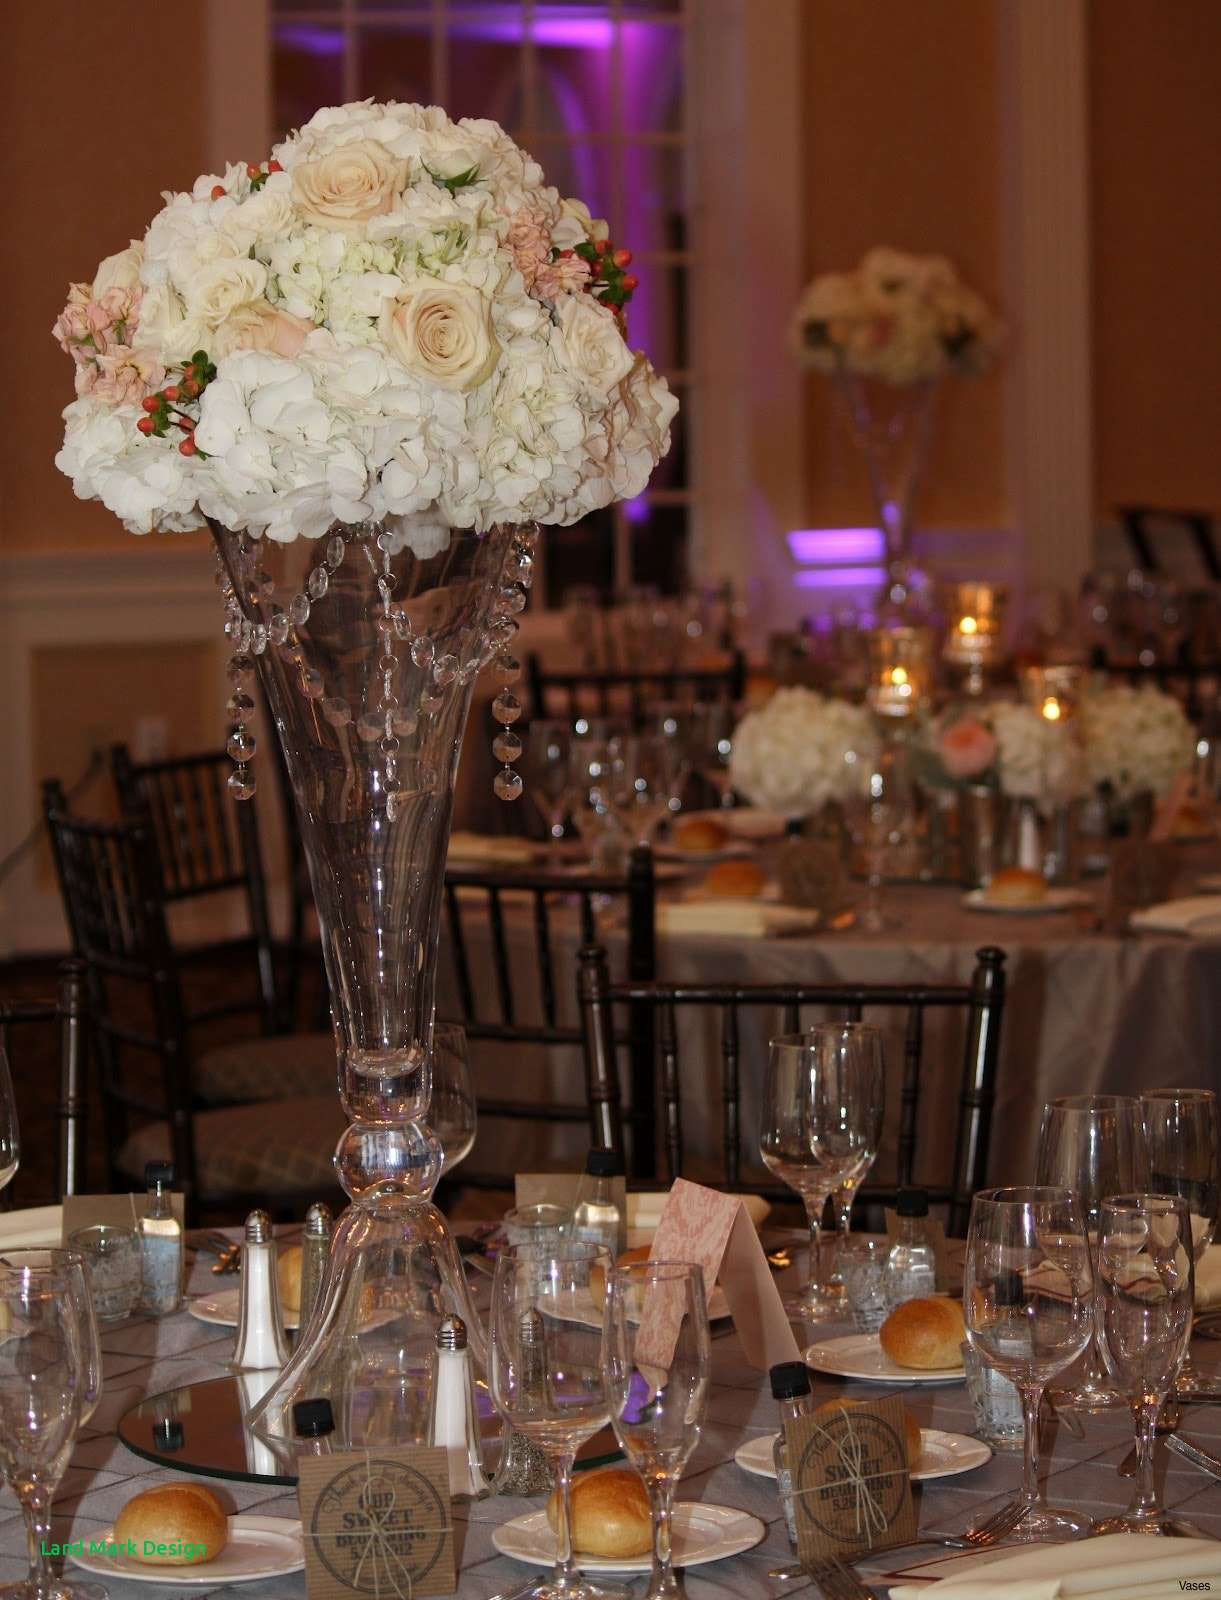 11 Elegant Silver Table Vase 2021 free download silver table vase of interesting centerpieces design home design intended for vases wedding centerpiece cheap tall vase centerpieces reception table with amazing glass i 0d